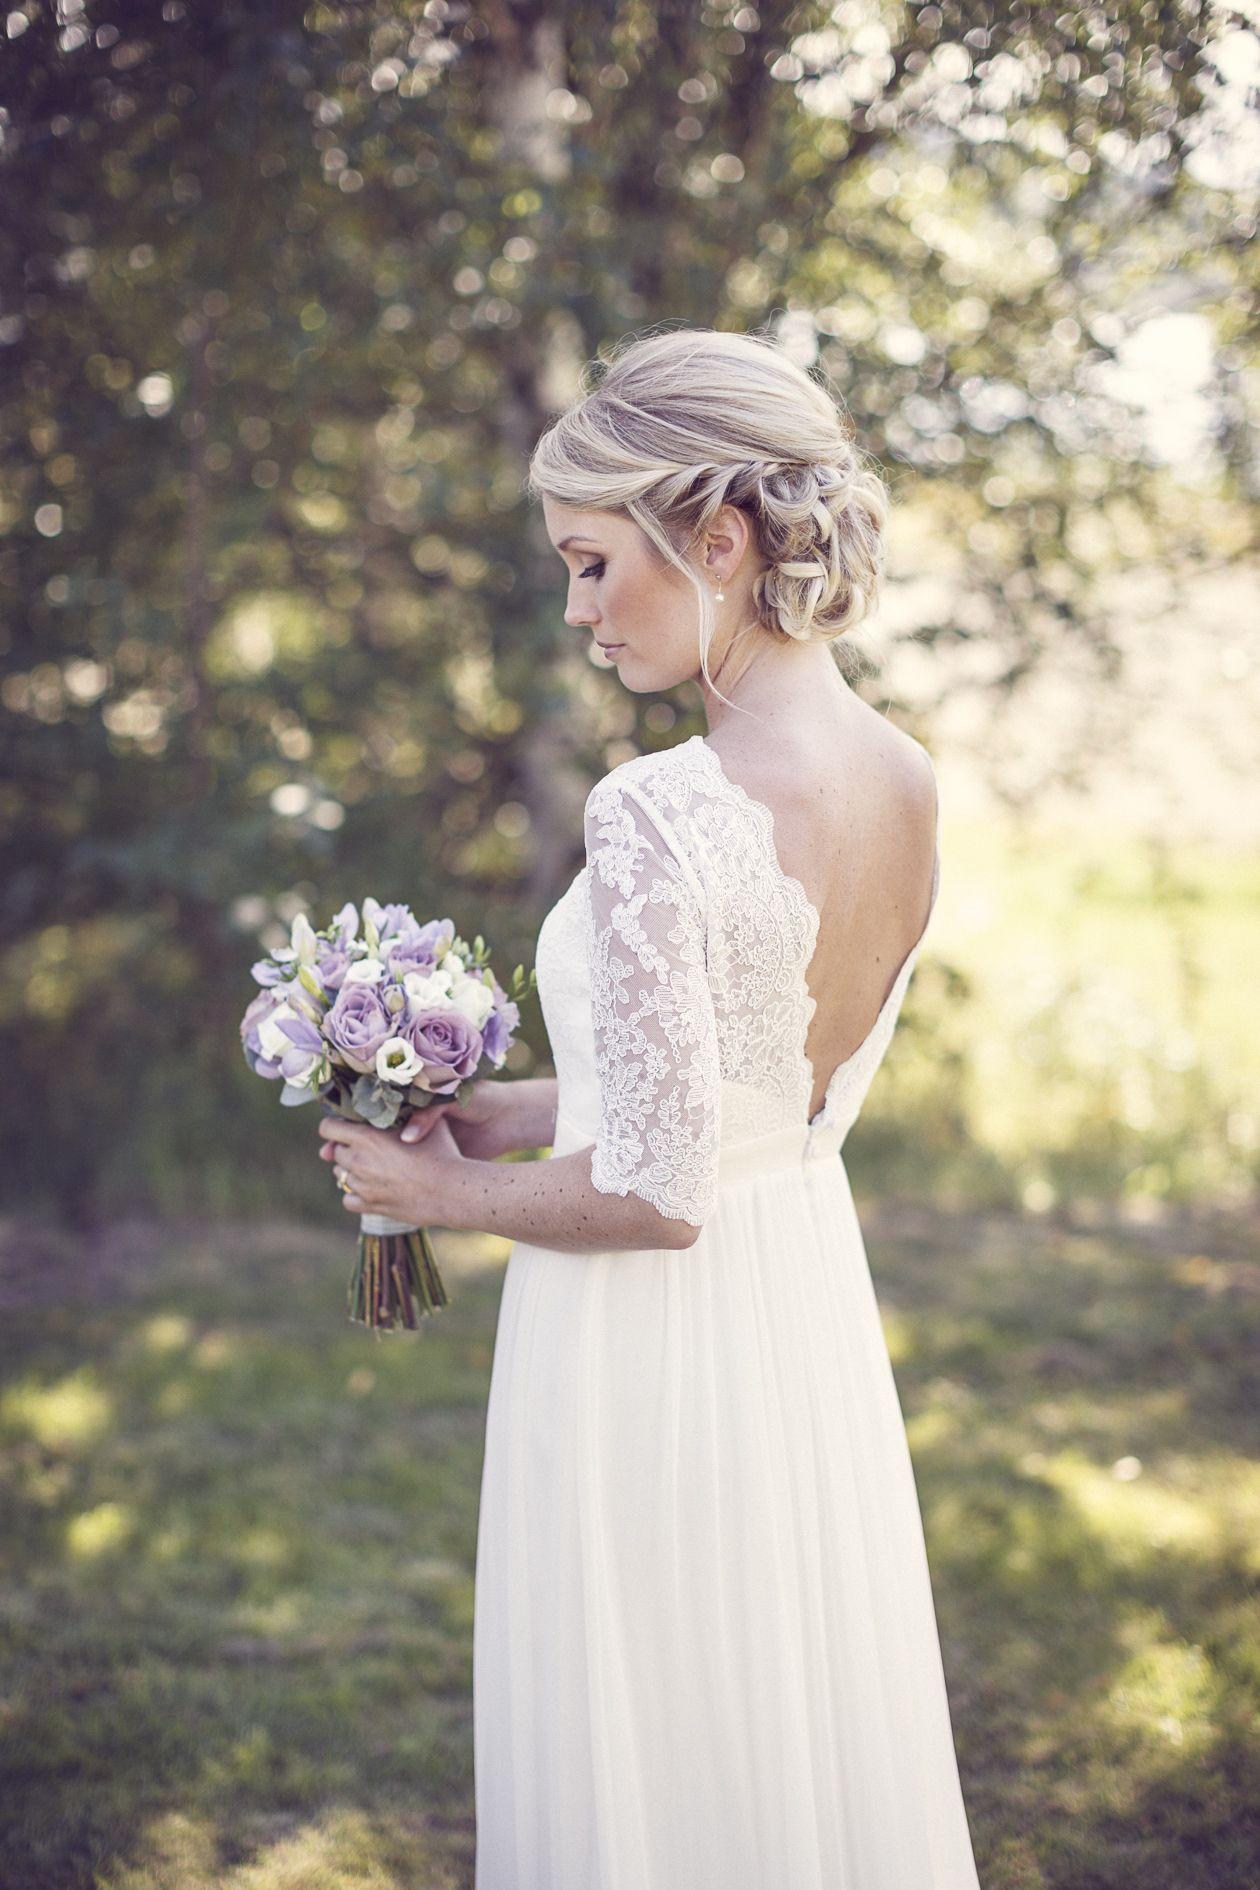 Athena Wedding Dress From By Malina Wedding Collection Photo Elin